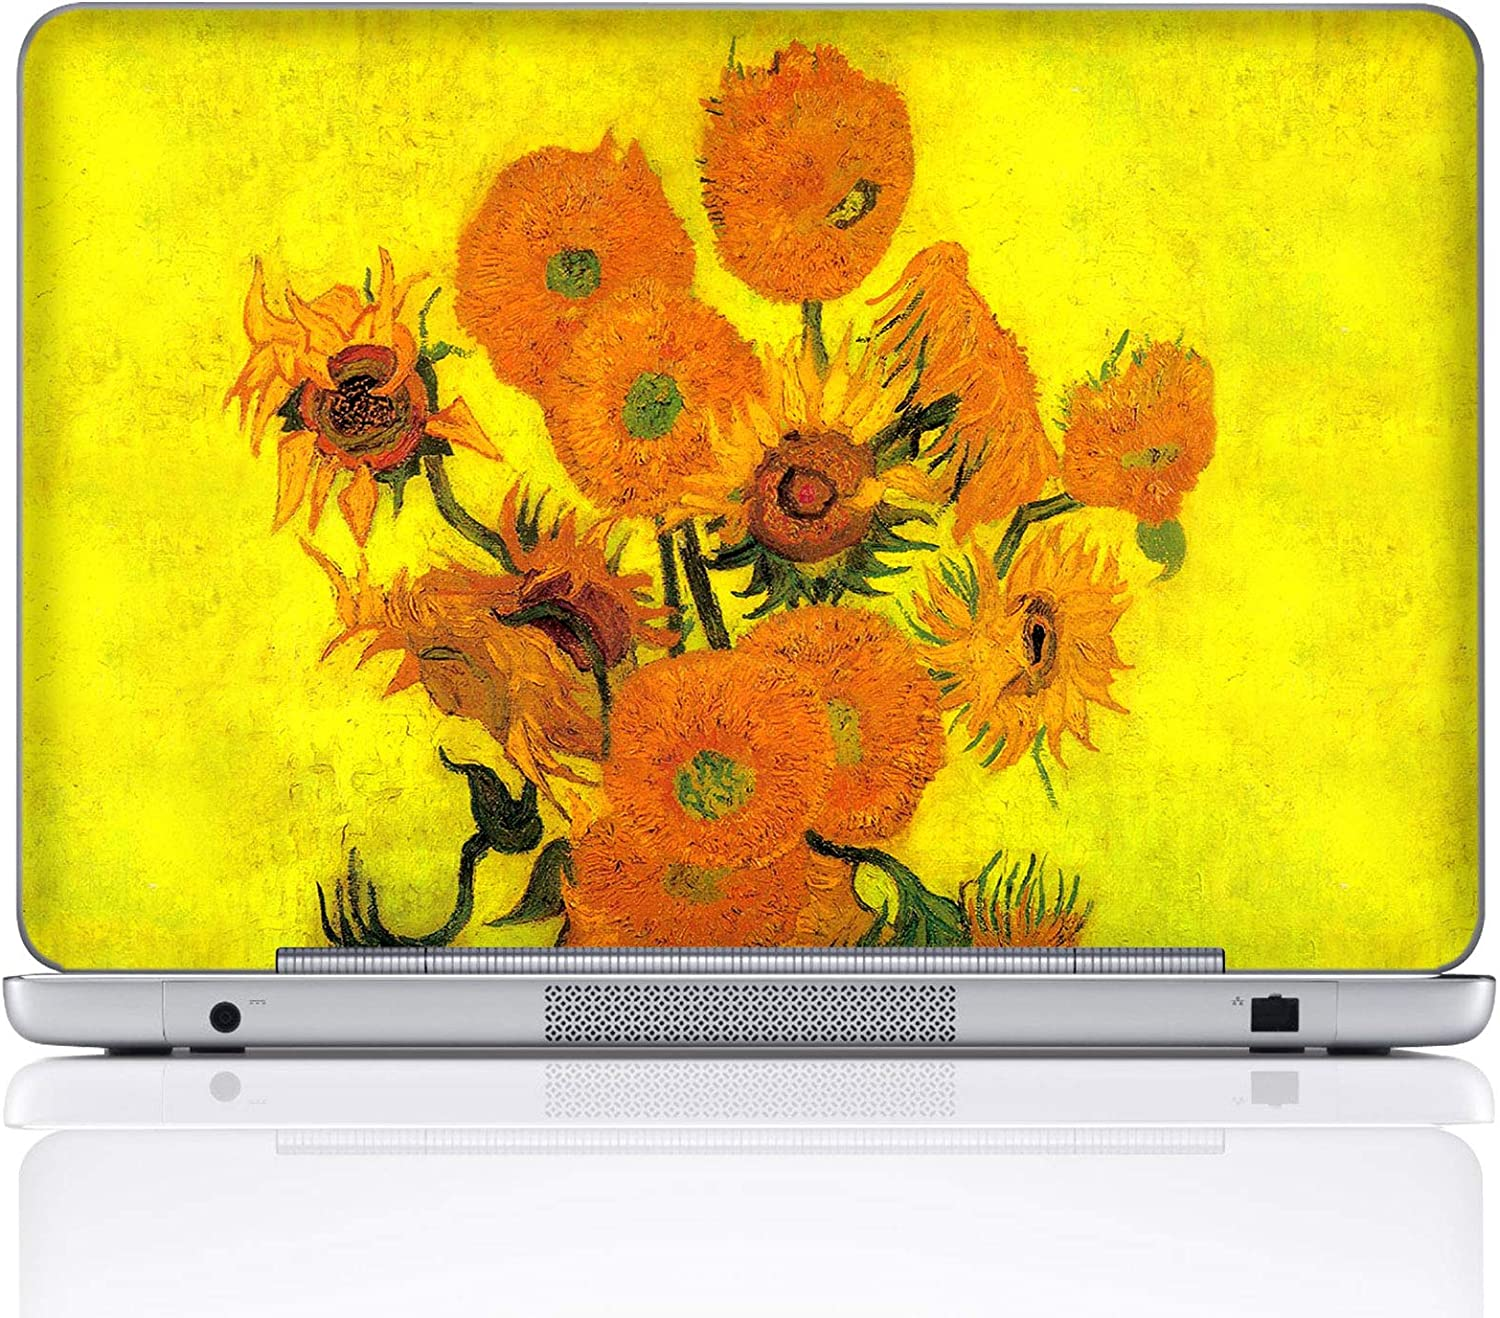 Meffort Inc 17 17.3 Inch Laptop Notebook Skin Sticker Cover Art Decal (Included 2 Wrist pad) - Van Gogh Sunflowers